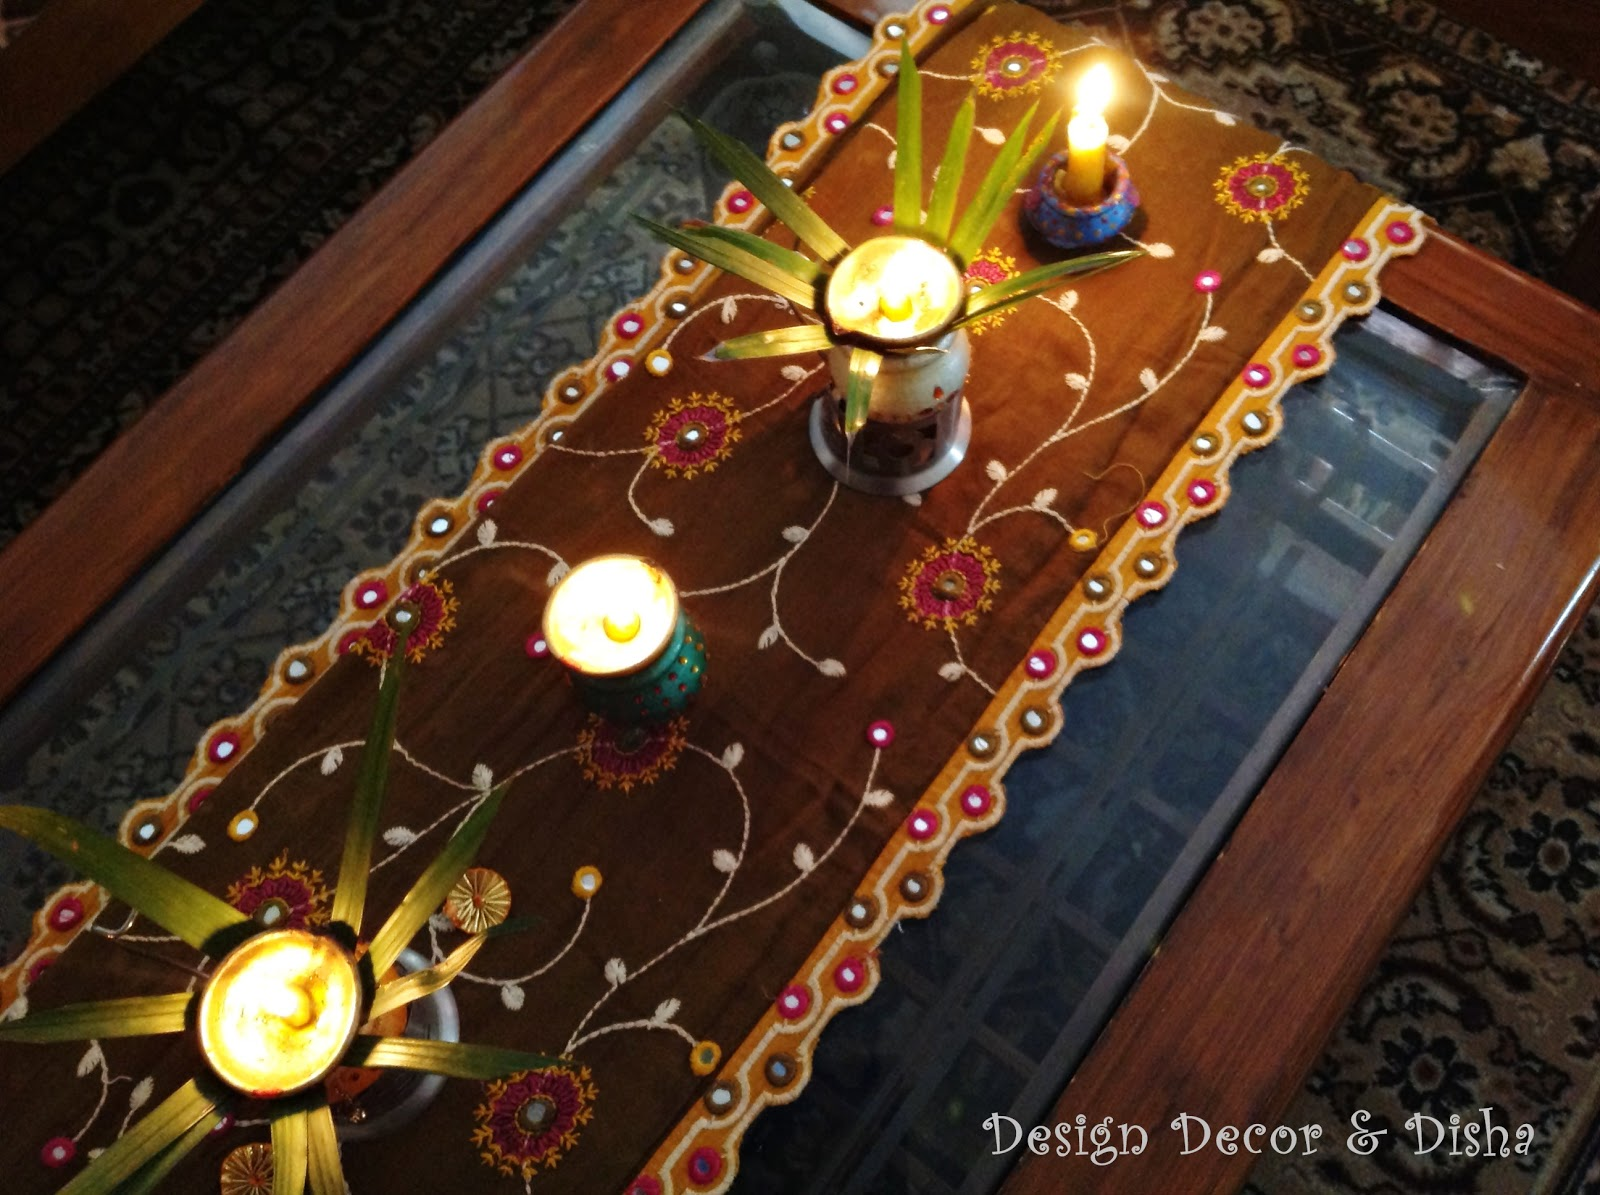 Design Decor Disha An Indian Design Decor Blog Diwali Craft